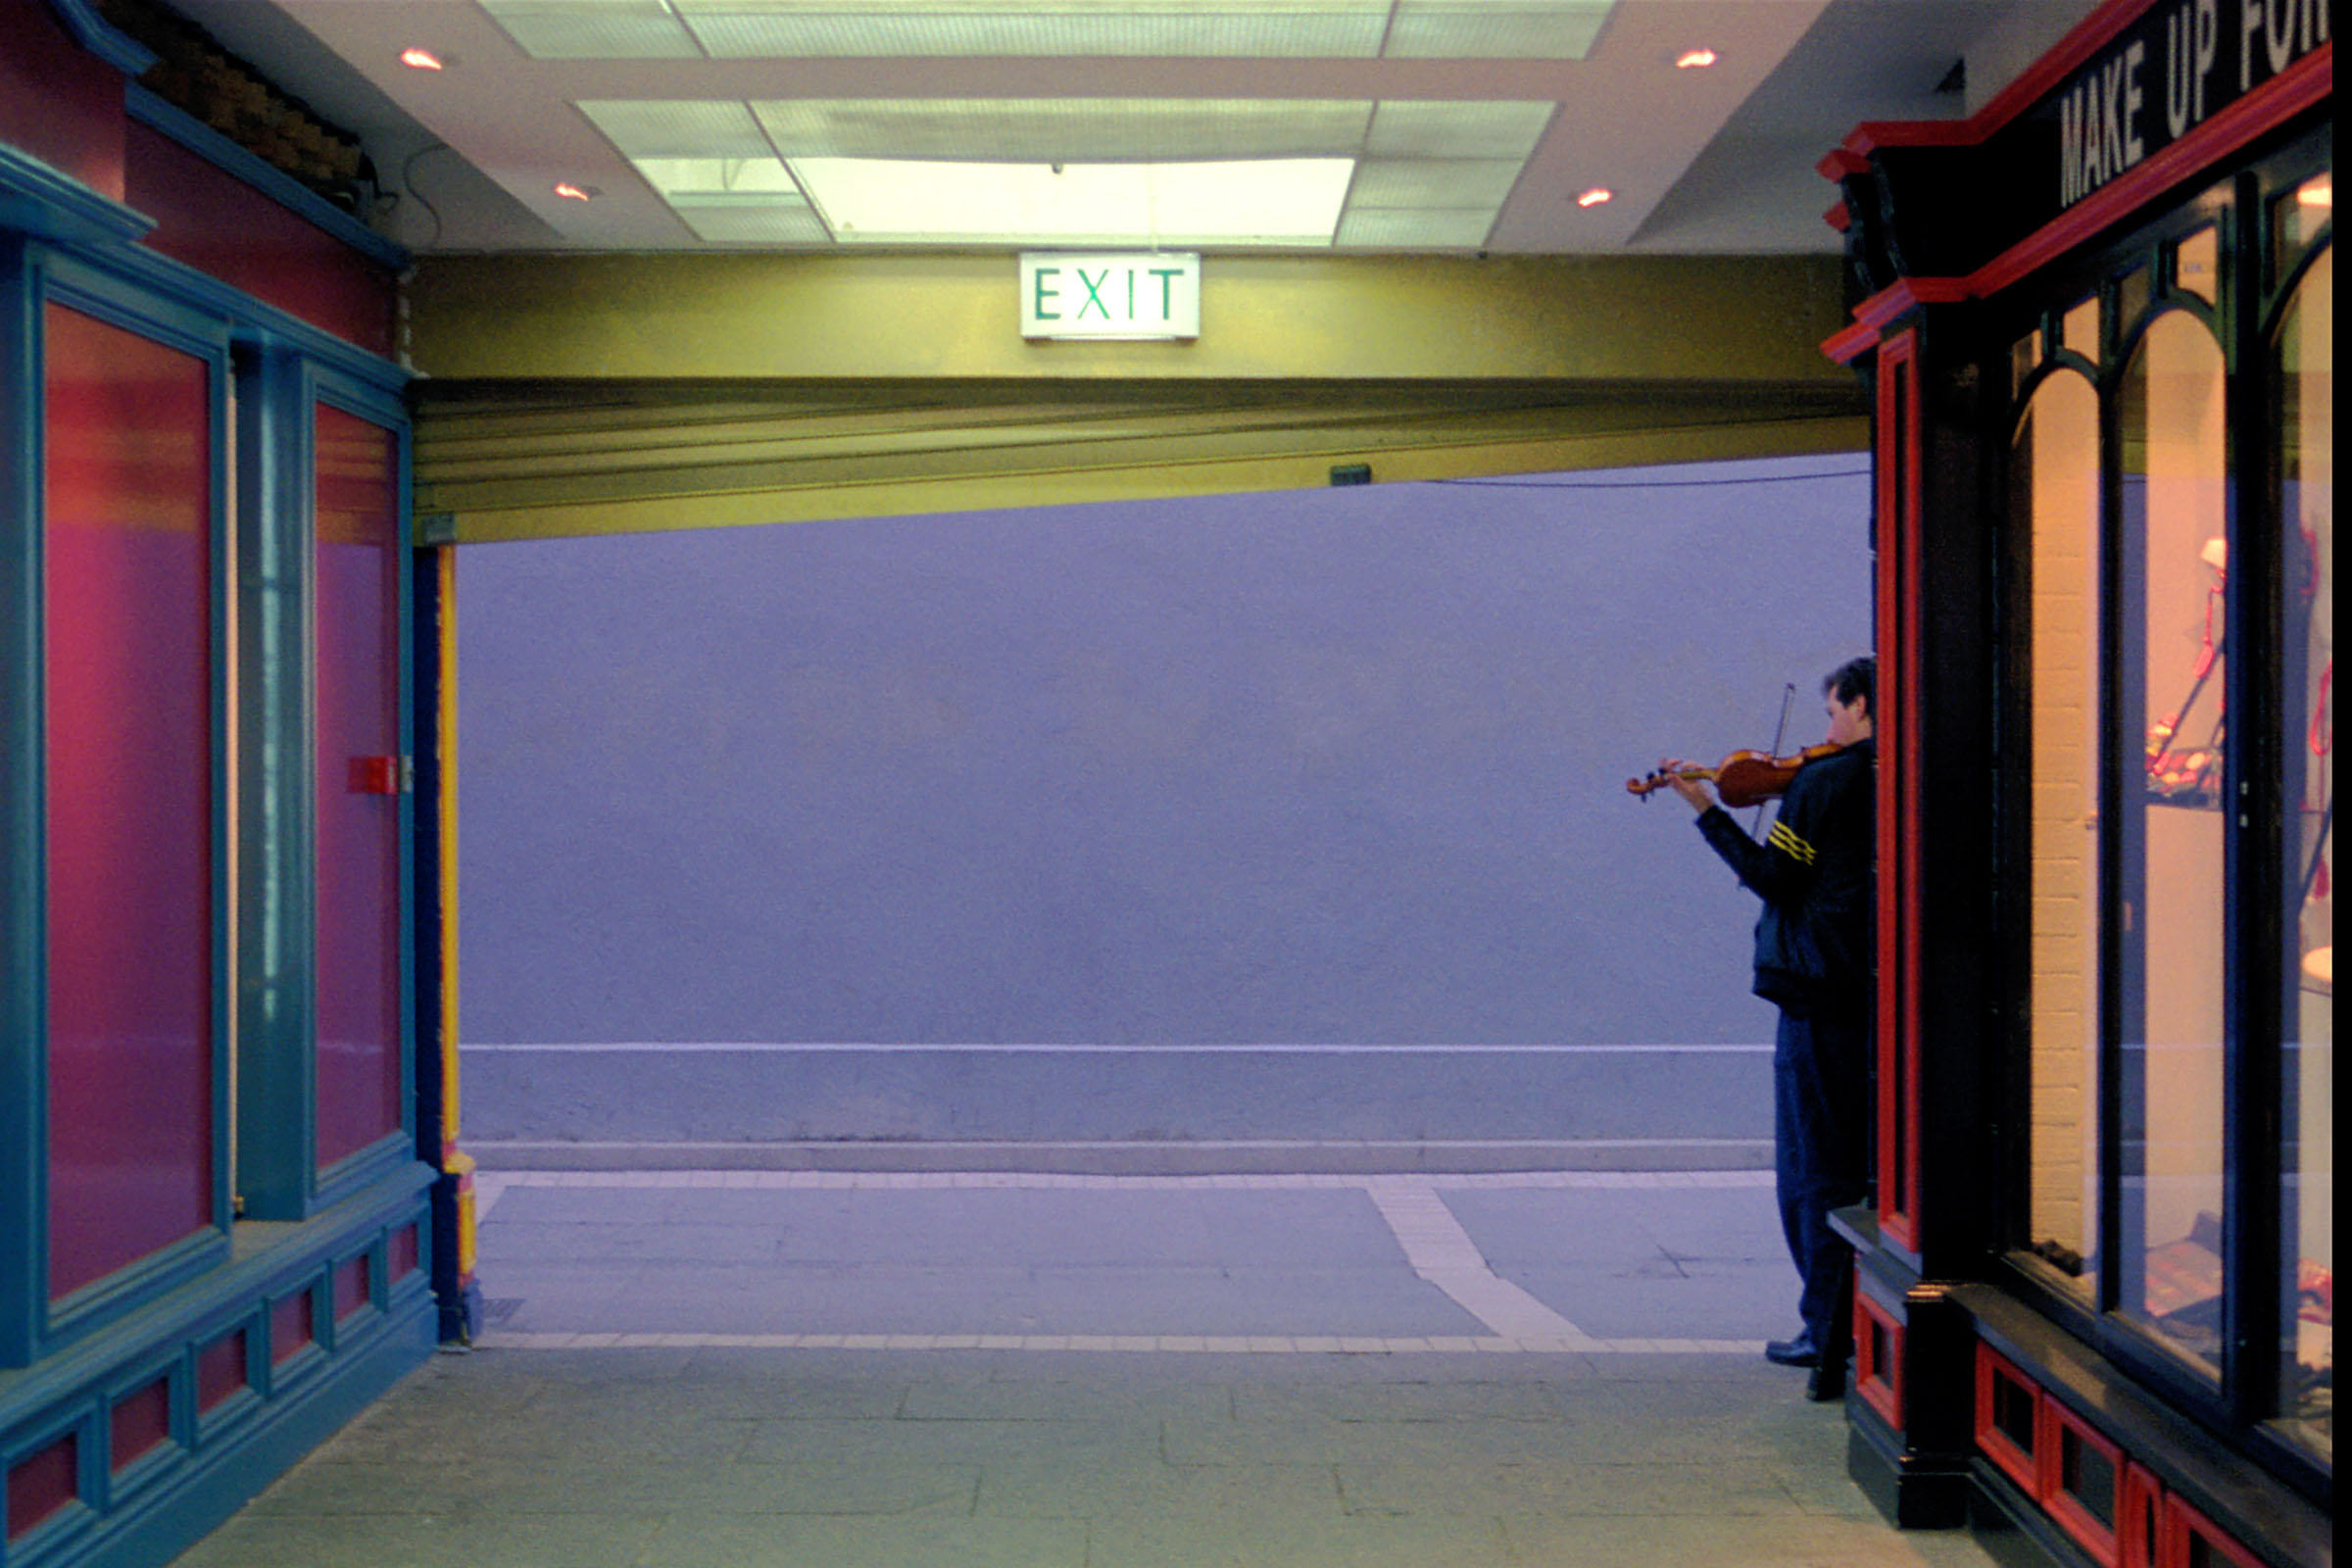 Lone Fiddler, Johnson's Court, Dublin by Fionán O'Connell